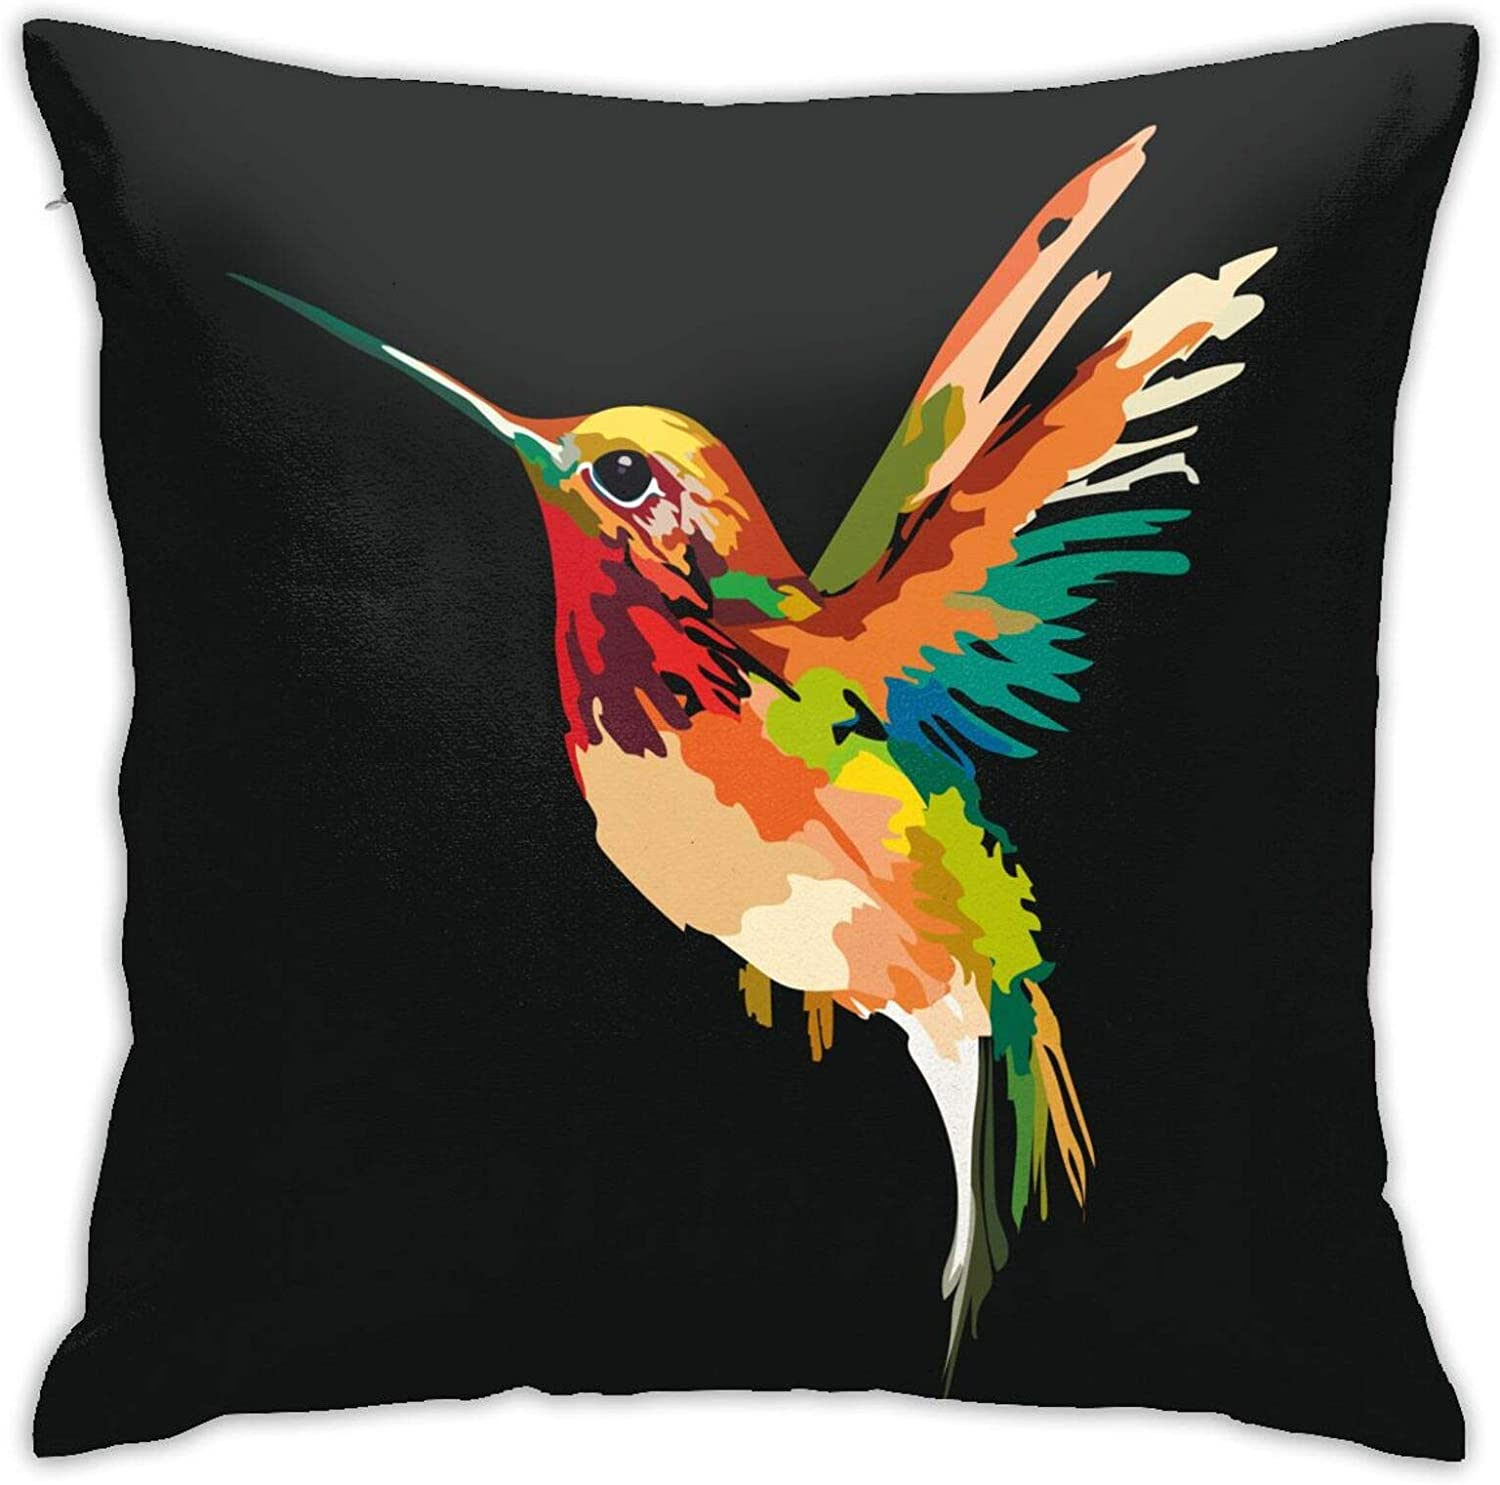 WAZHIJIA Hummingbird Pillows Decorative Throw Pillow Covers 18 X 18 Inch,Oil Painting Bird Cushion Cover Square Pillow Cases for Car Sofa Home Decor